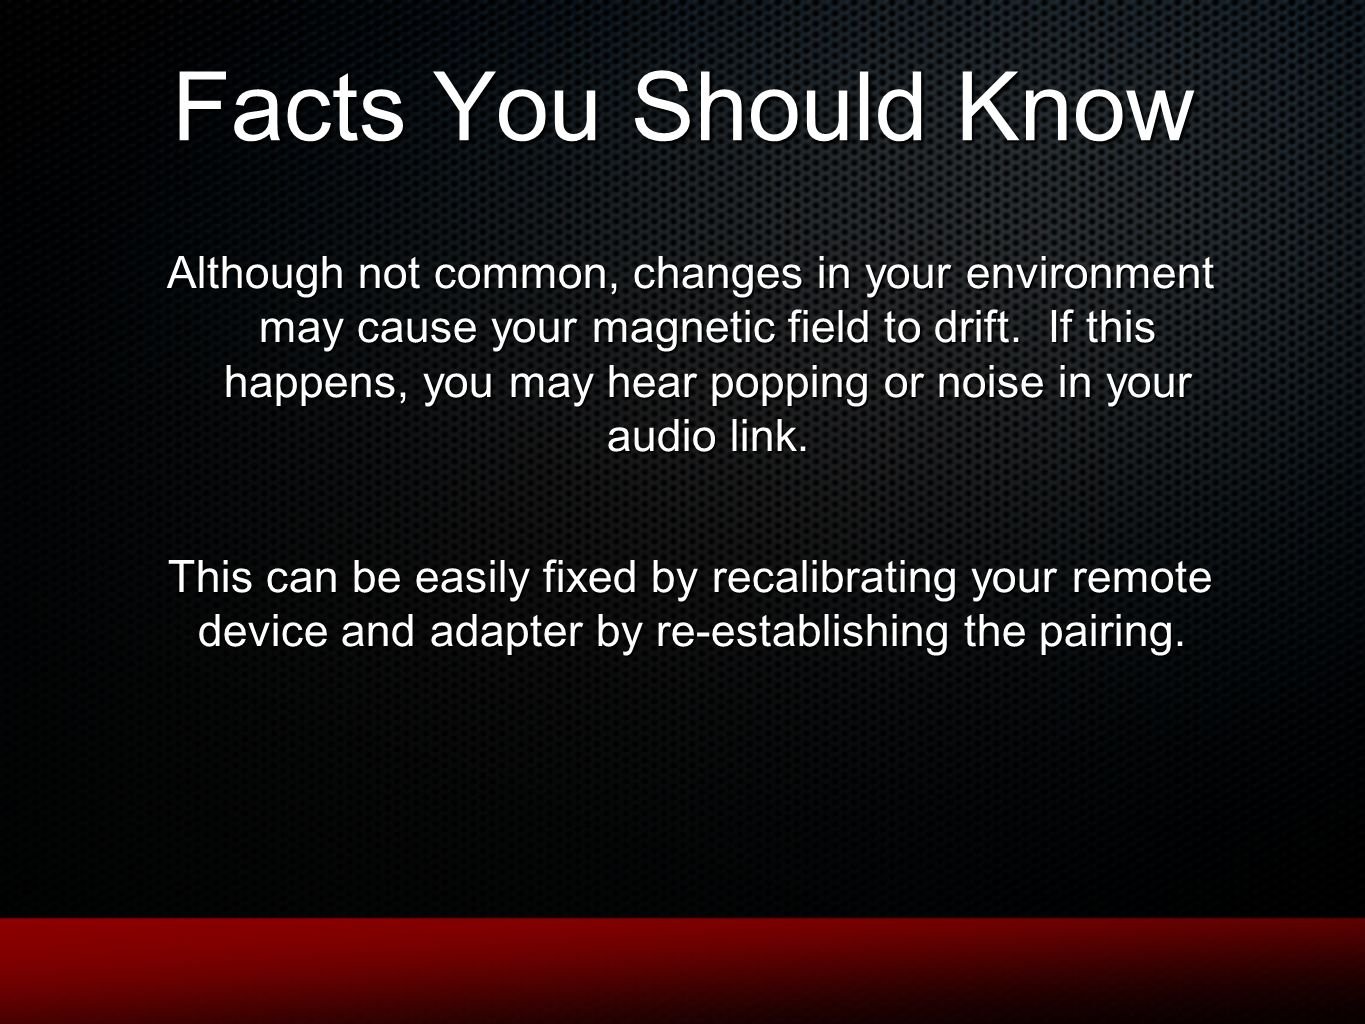 Facts You Should Know Although not common, changes in your environment may cause your magnetic field to drift. If this happens, you may hear popping o